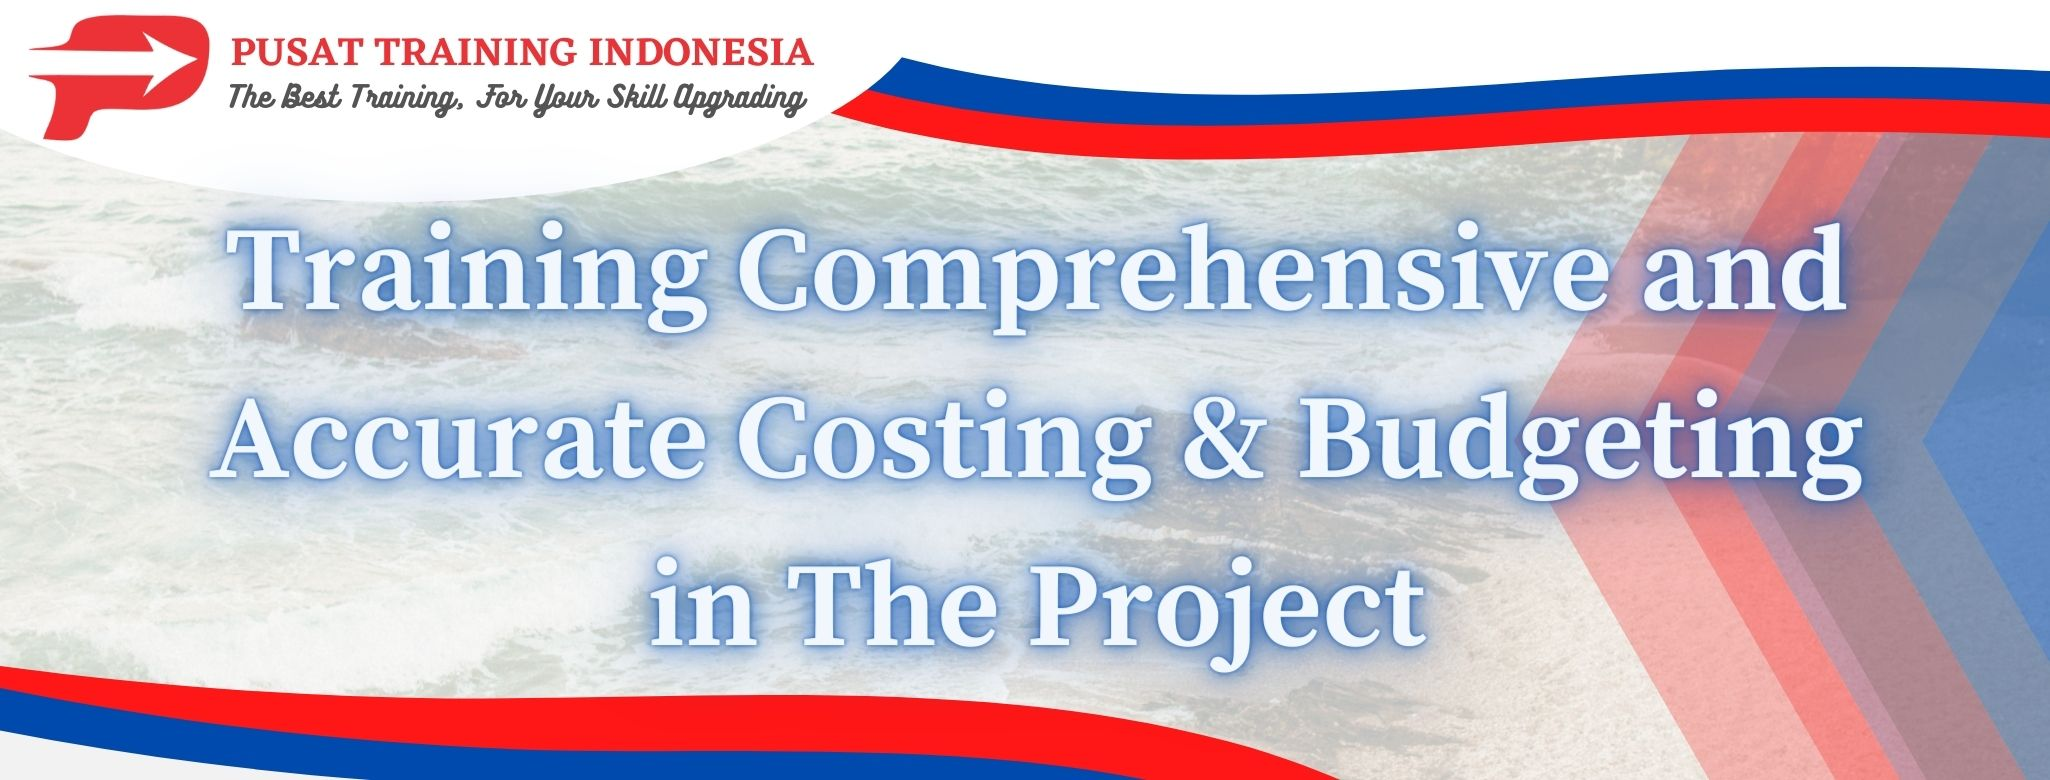 Training-Comprehensive-and-Accurate-Costing-Budgeting-in-The-Project